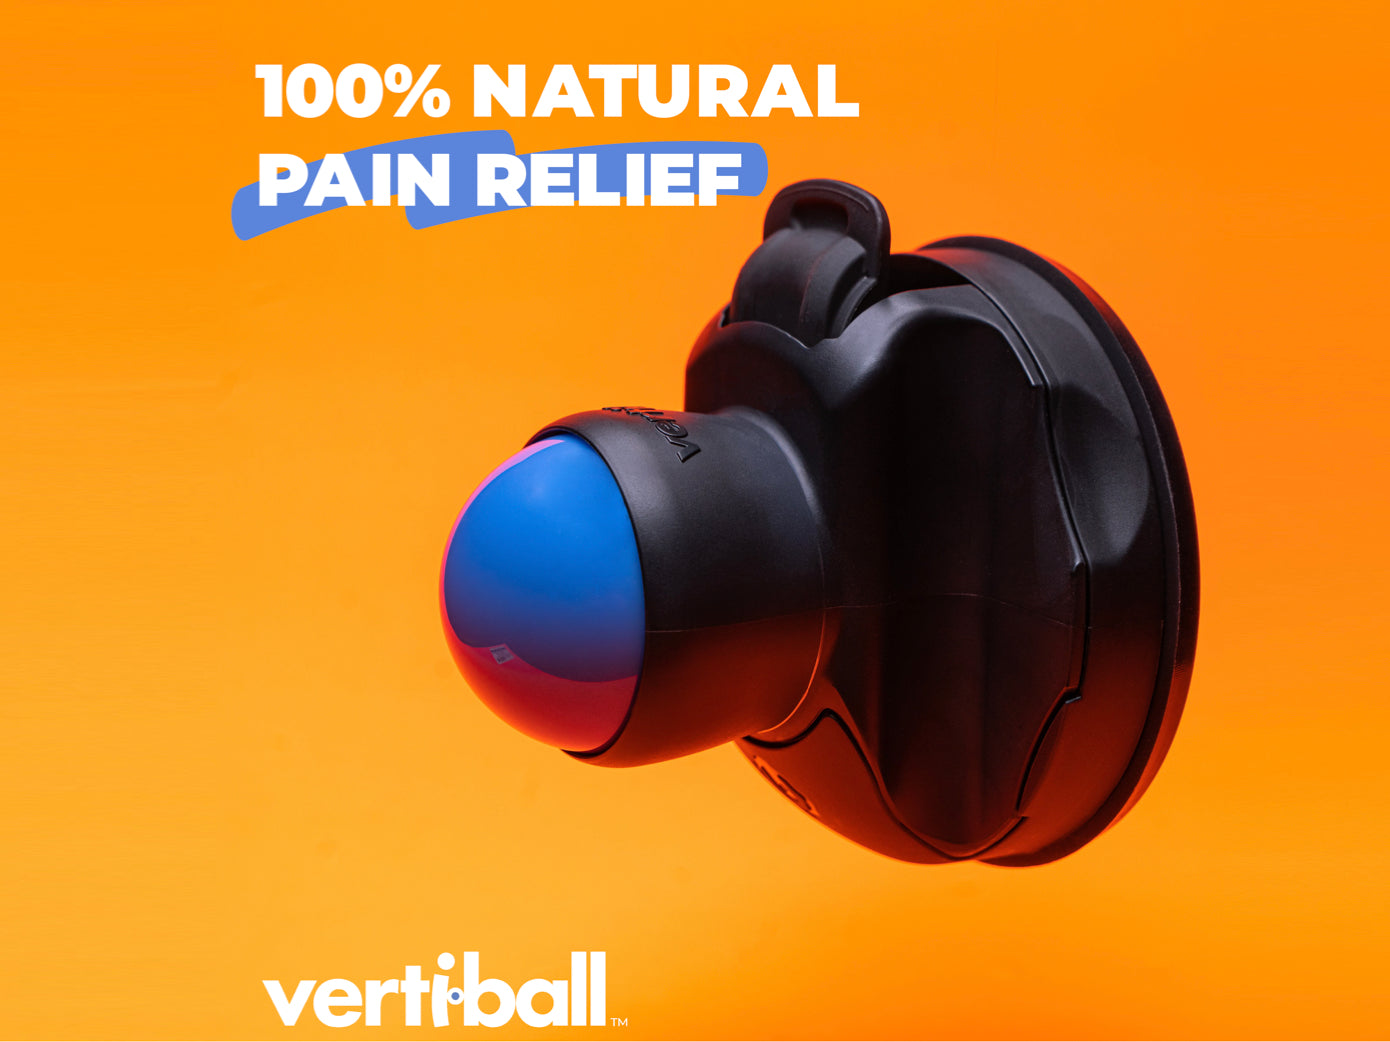 Vertiball Muscle Massager with patented mount technology